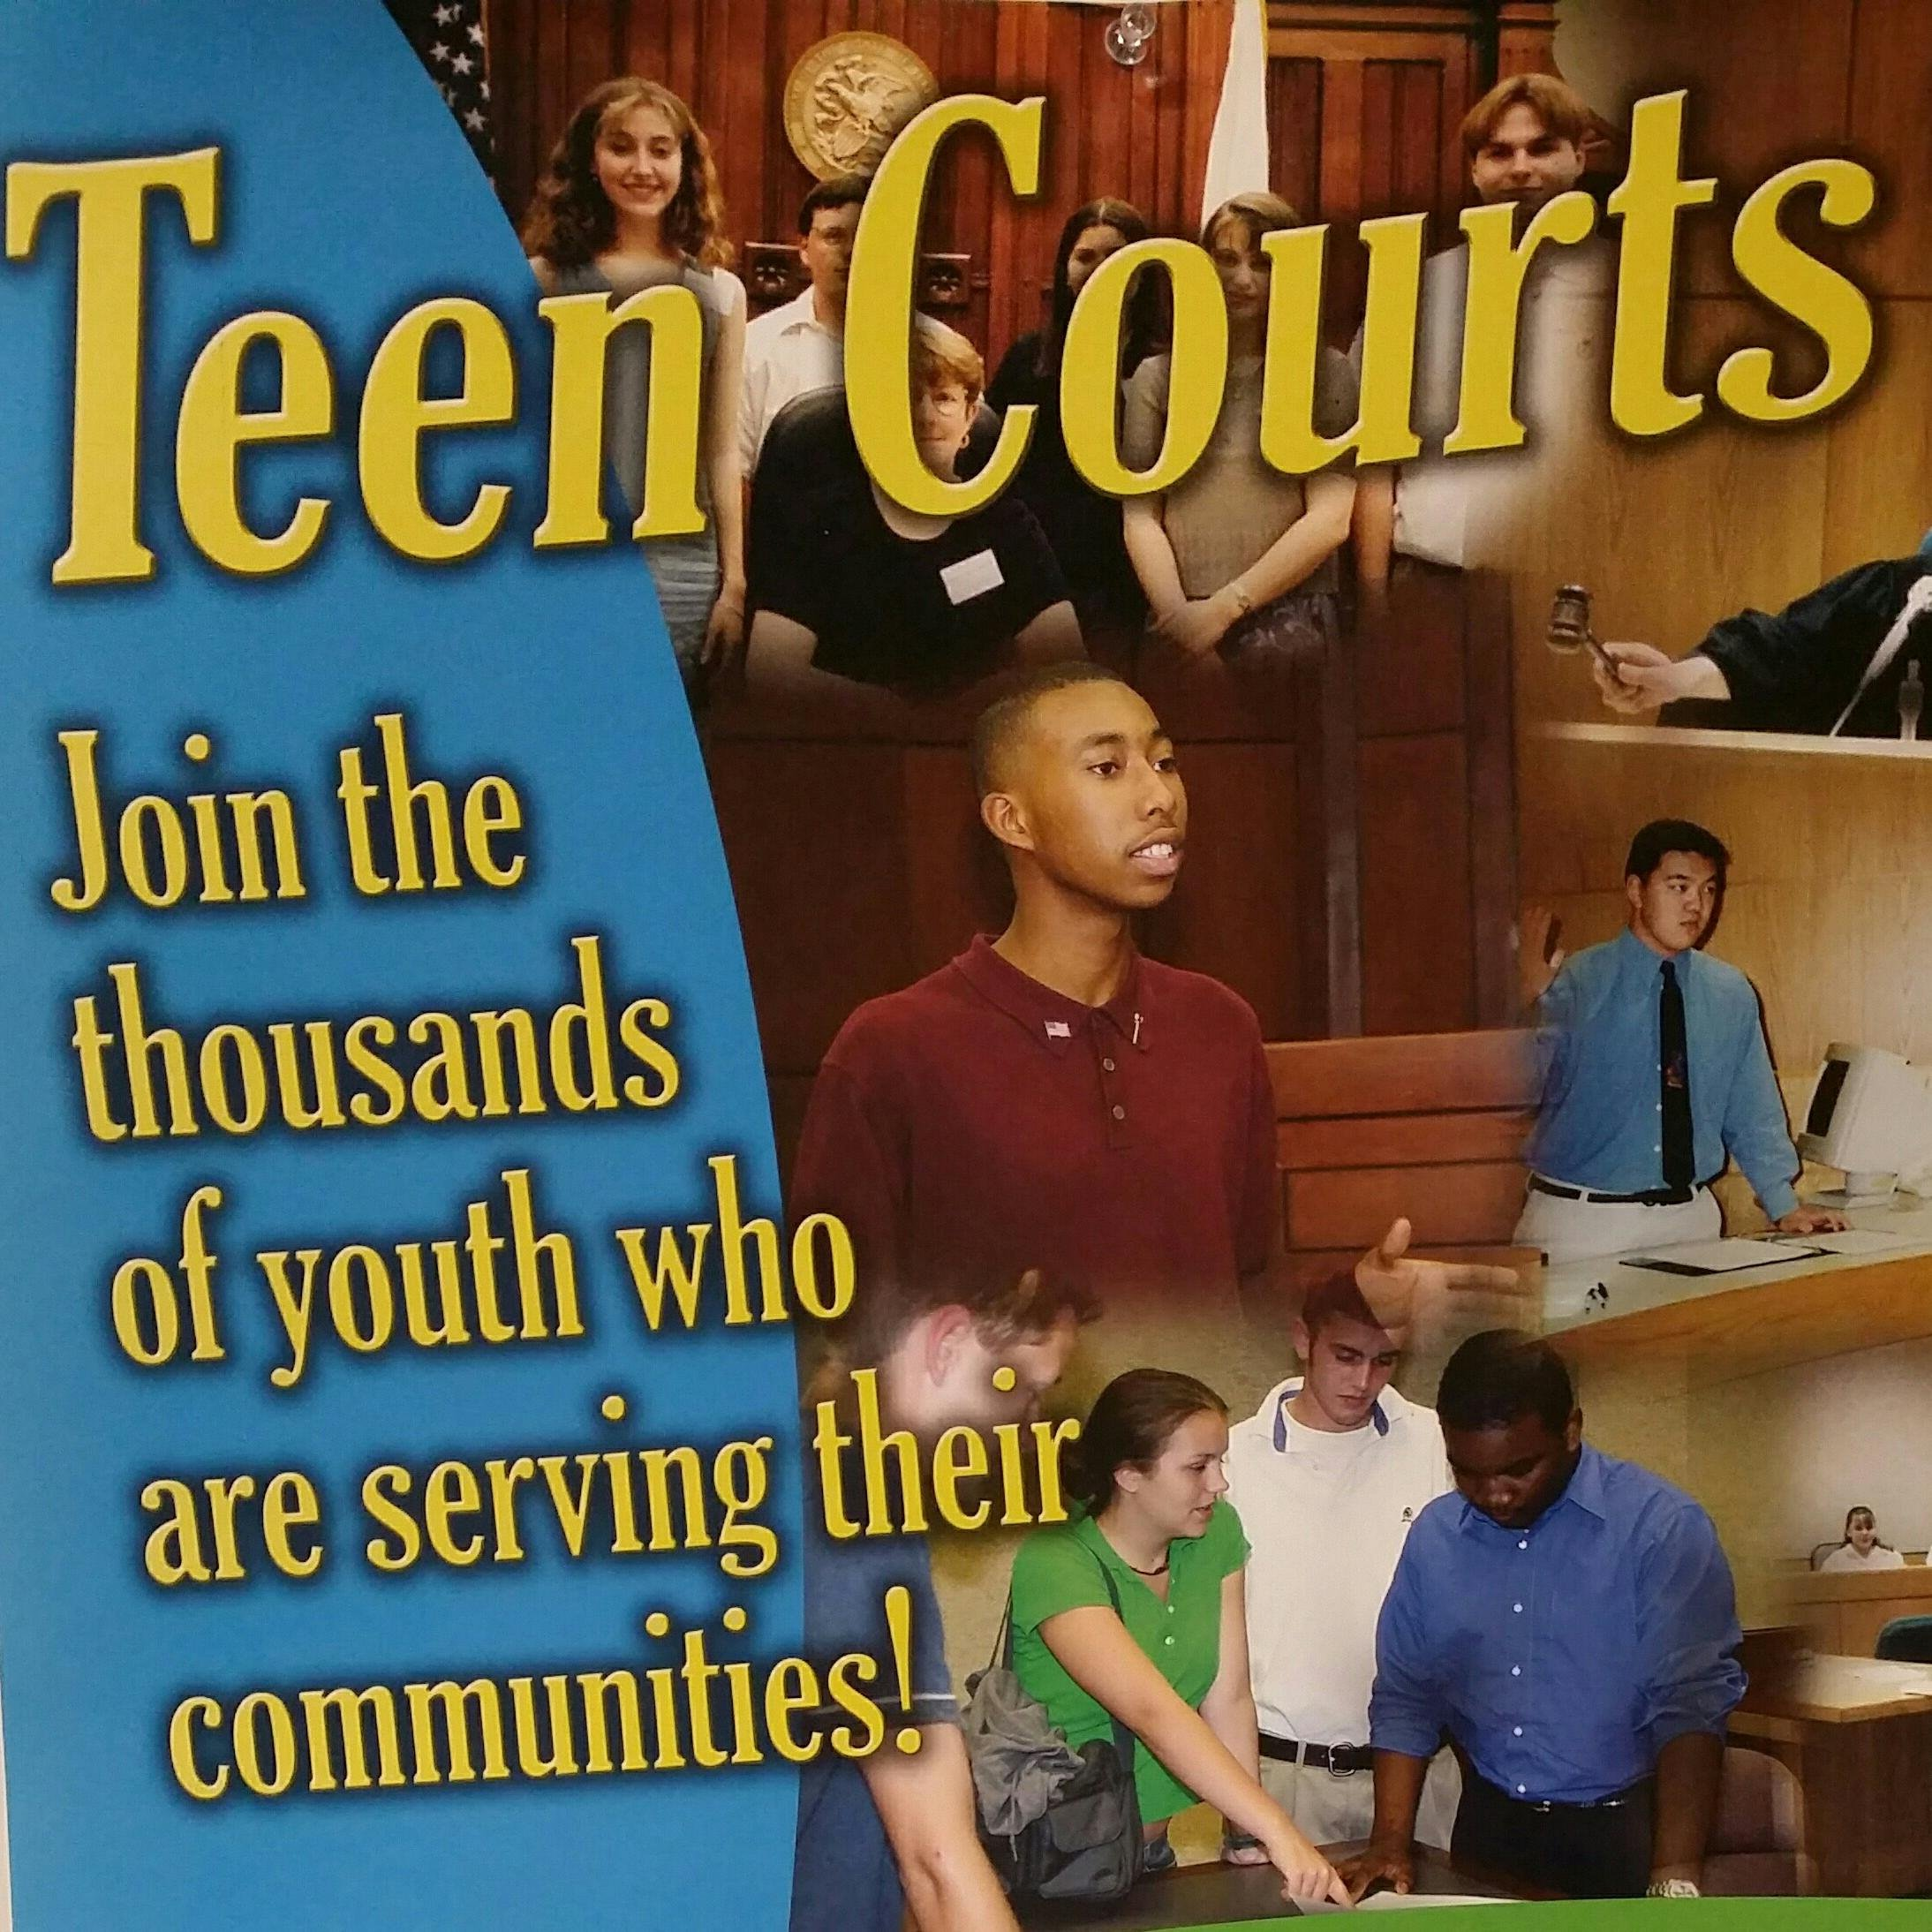 And serving on teen court